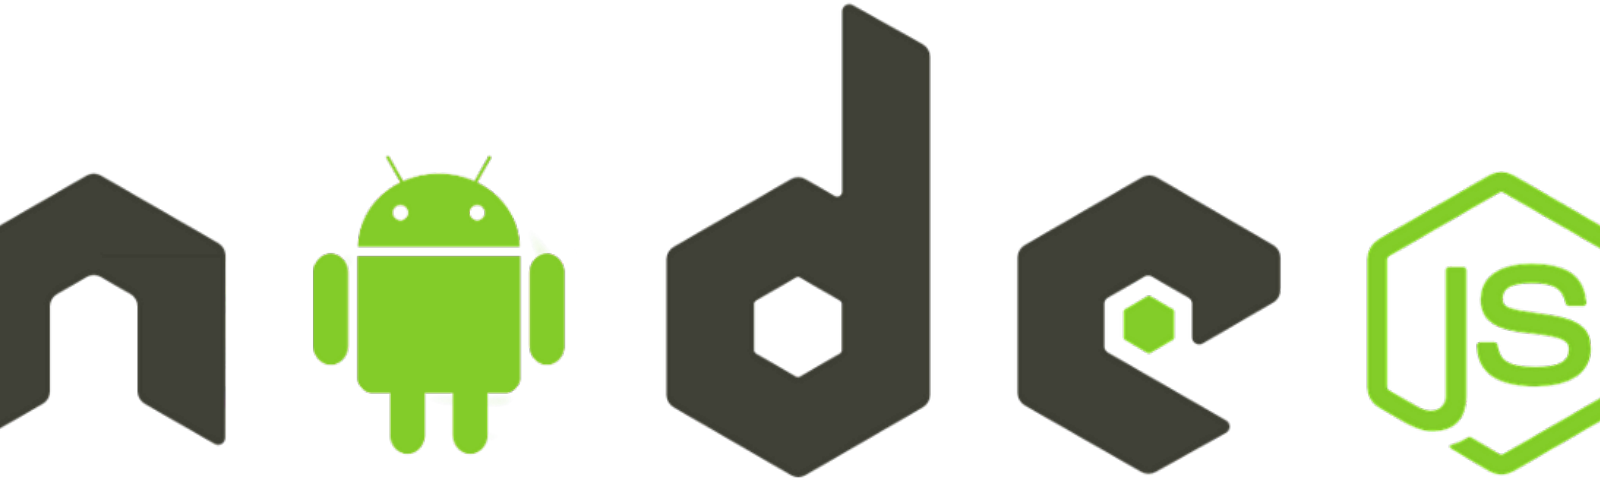 Building a Node js application on Android